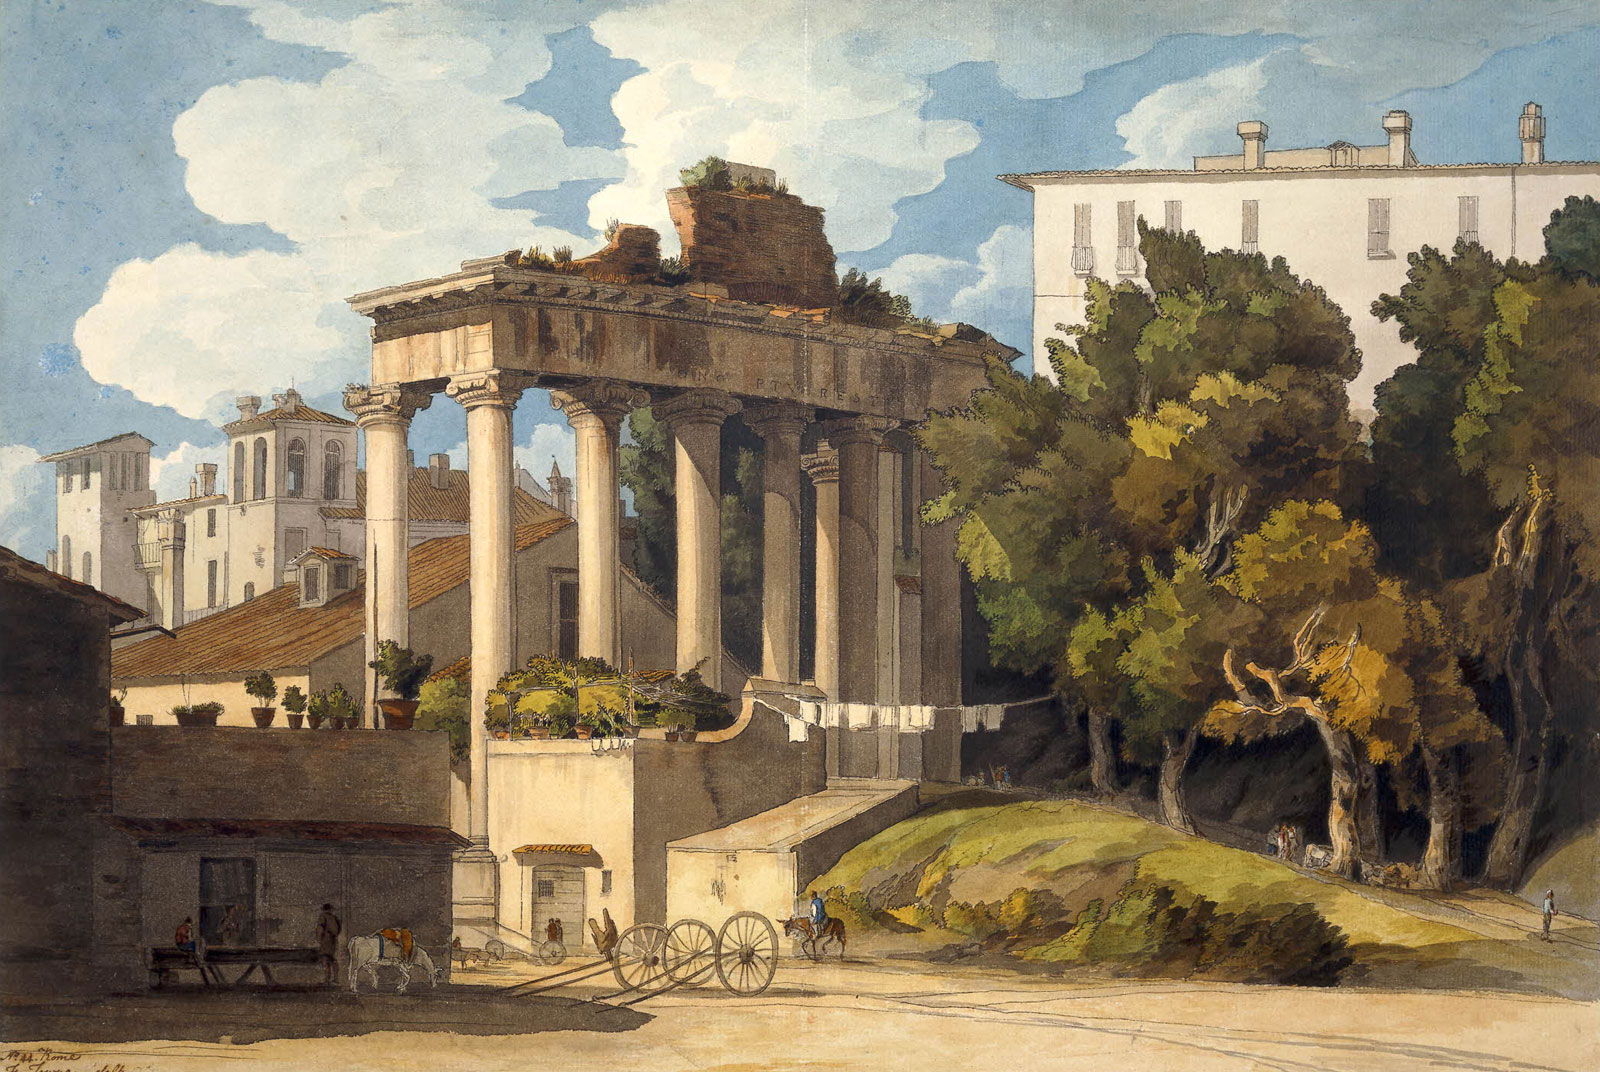 Rome: Behind the Ruins